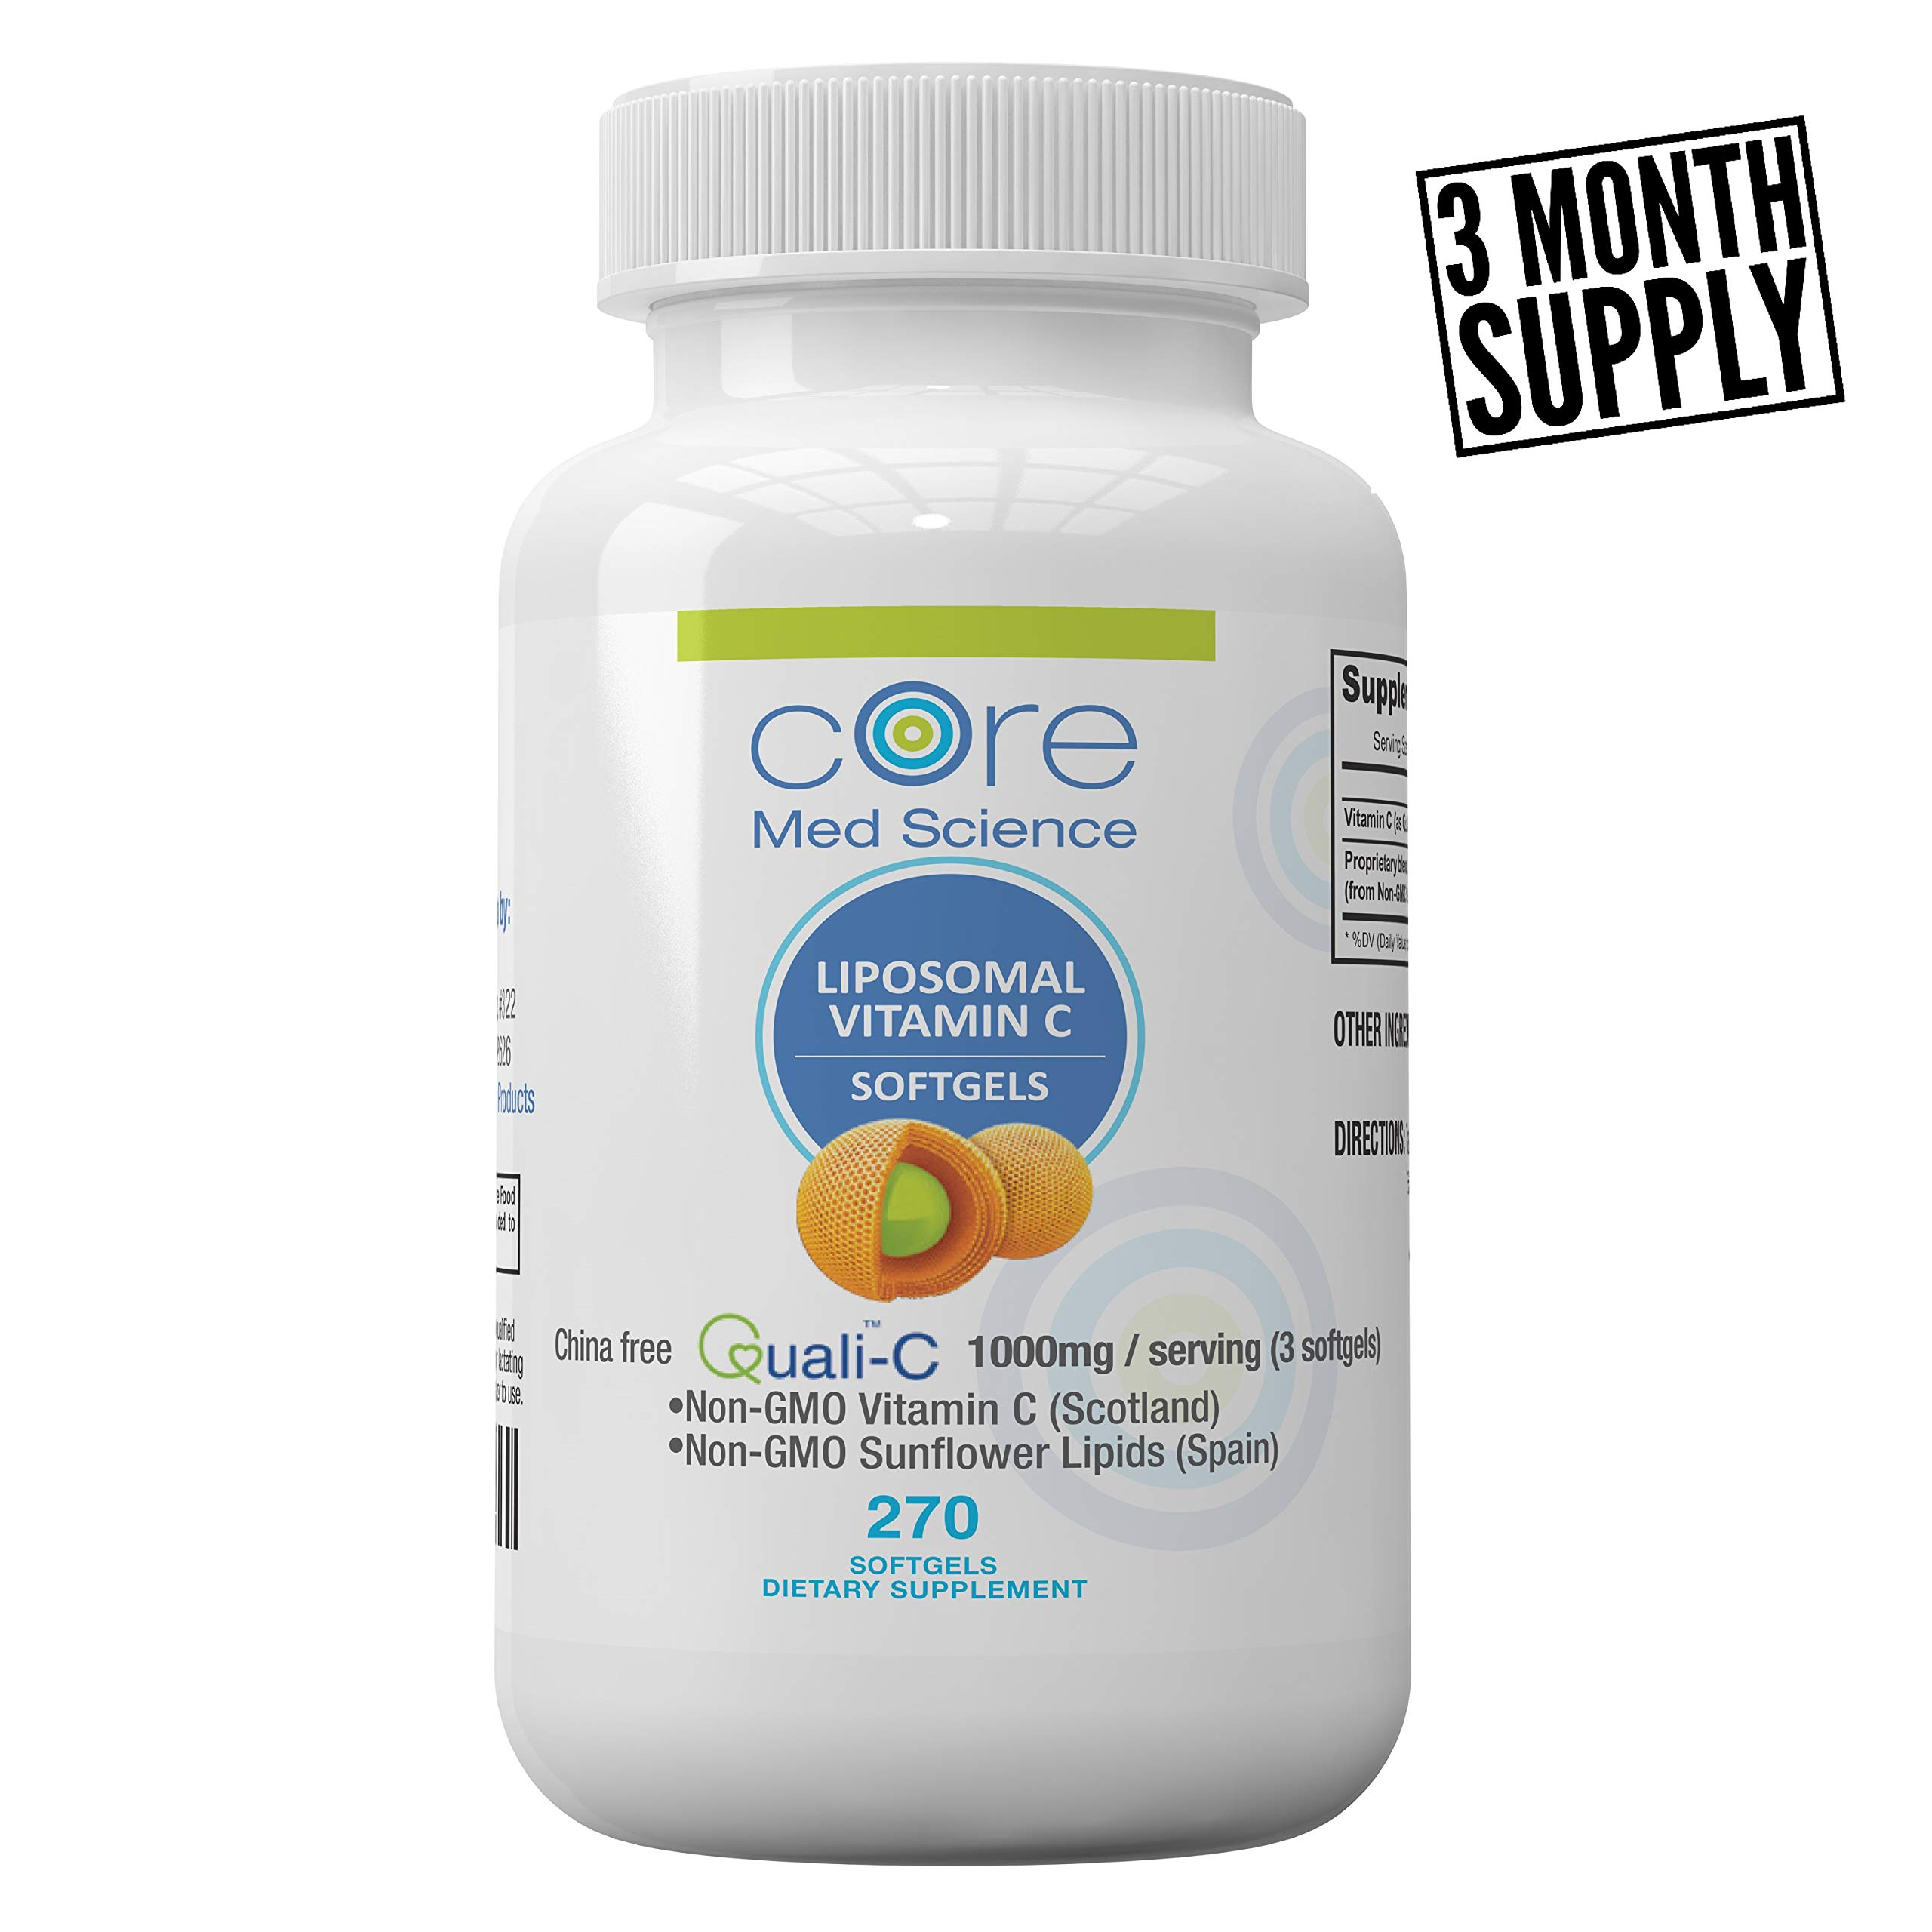 Liposomal Vitamin C Softgels 1000mg/dose - 3 Month Supply - 270 softgels | China-Free Quali®-C Scottish Ascorbic Acid| High Absorption Immunity & Collagen Booster Supplement | Non-GMO, No Soy